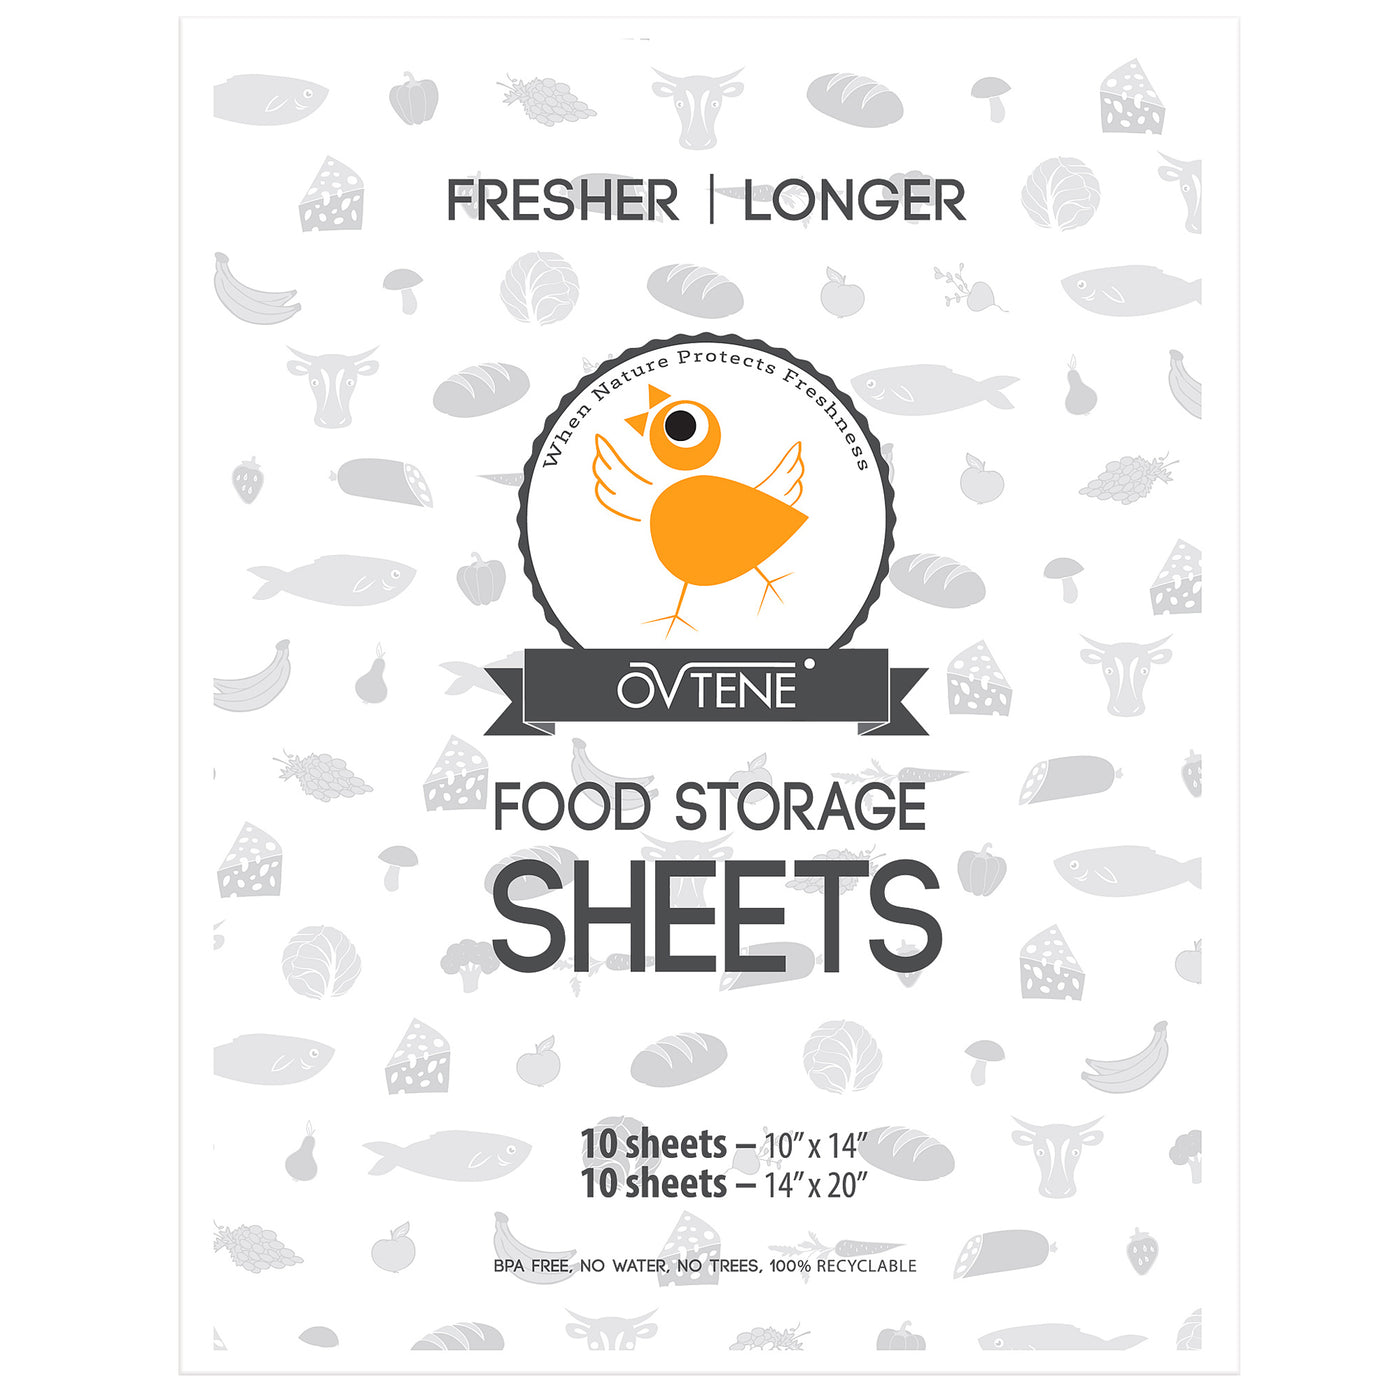 OVTENE Food Storage Sheets for Cheese, Meat, and Produce - Keeps Food Fresher (20 Sheets) Longer